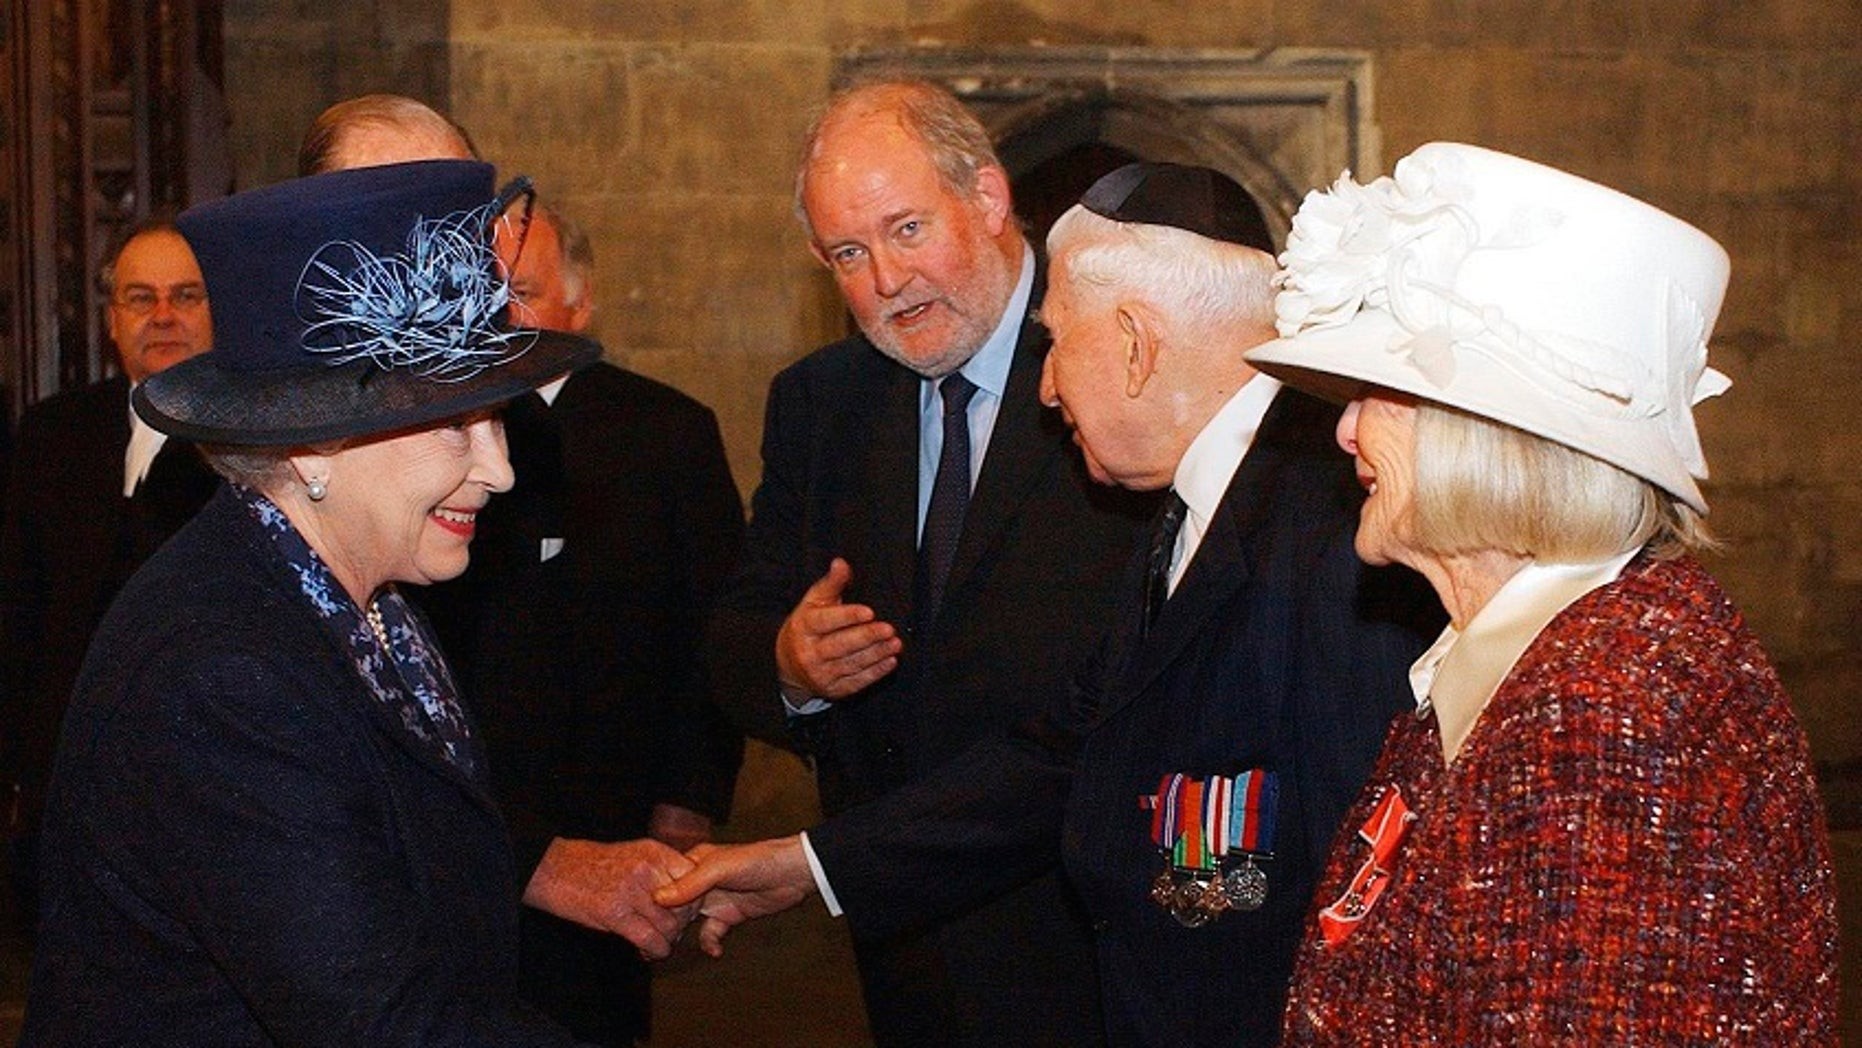 FILE - In this Thursday, Jan. 27, 2005 file photo, Britain's Queen Elizabeth II, left, meets Holocaust survivor Gena Turgel during a service to remember victims of the Holocaust in Westminster Central Hall in London on the 60th anniversary of the liberation of Auschwitz. Turgel, a Holocaust survivor who comforted diarist Anne Frank at the Bergen-Belsen concentration camp months before its liberation, has died. She was 95. Britain's chief rabbi, Ephraim Mirvis, said Turgel died Thursday, June 7, 2018. (Kirsty Wigglesworth, Pool Photo via AP, File)